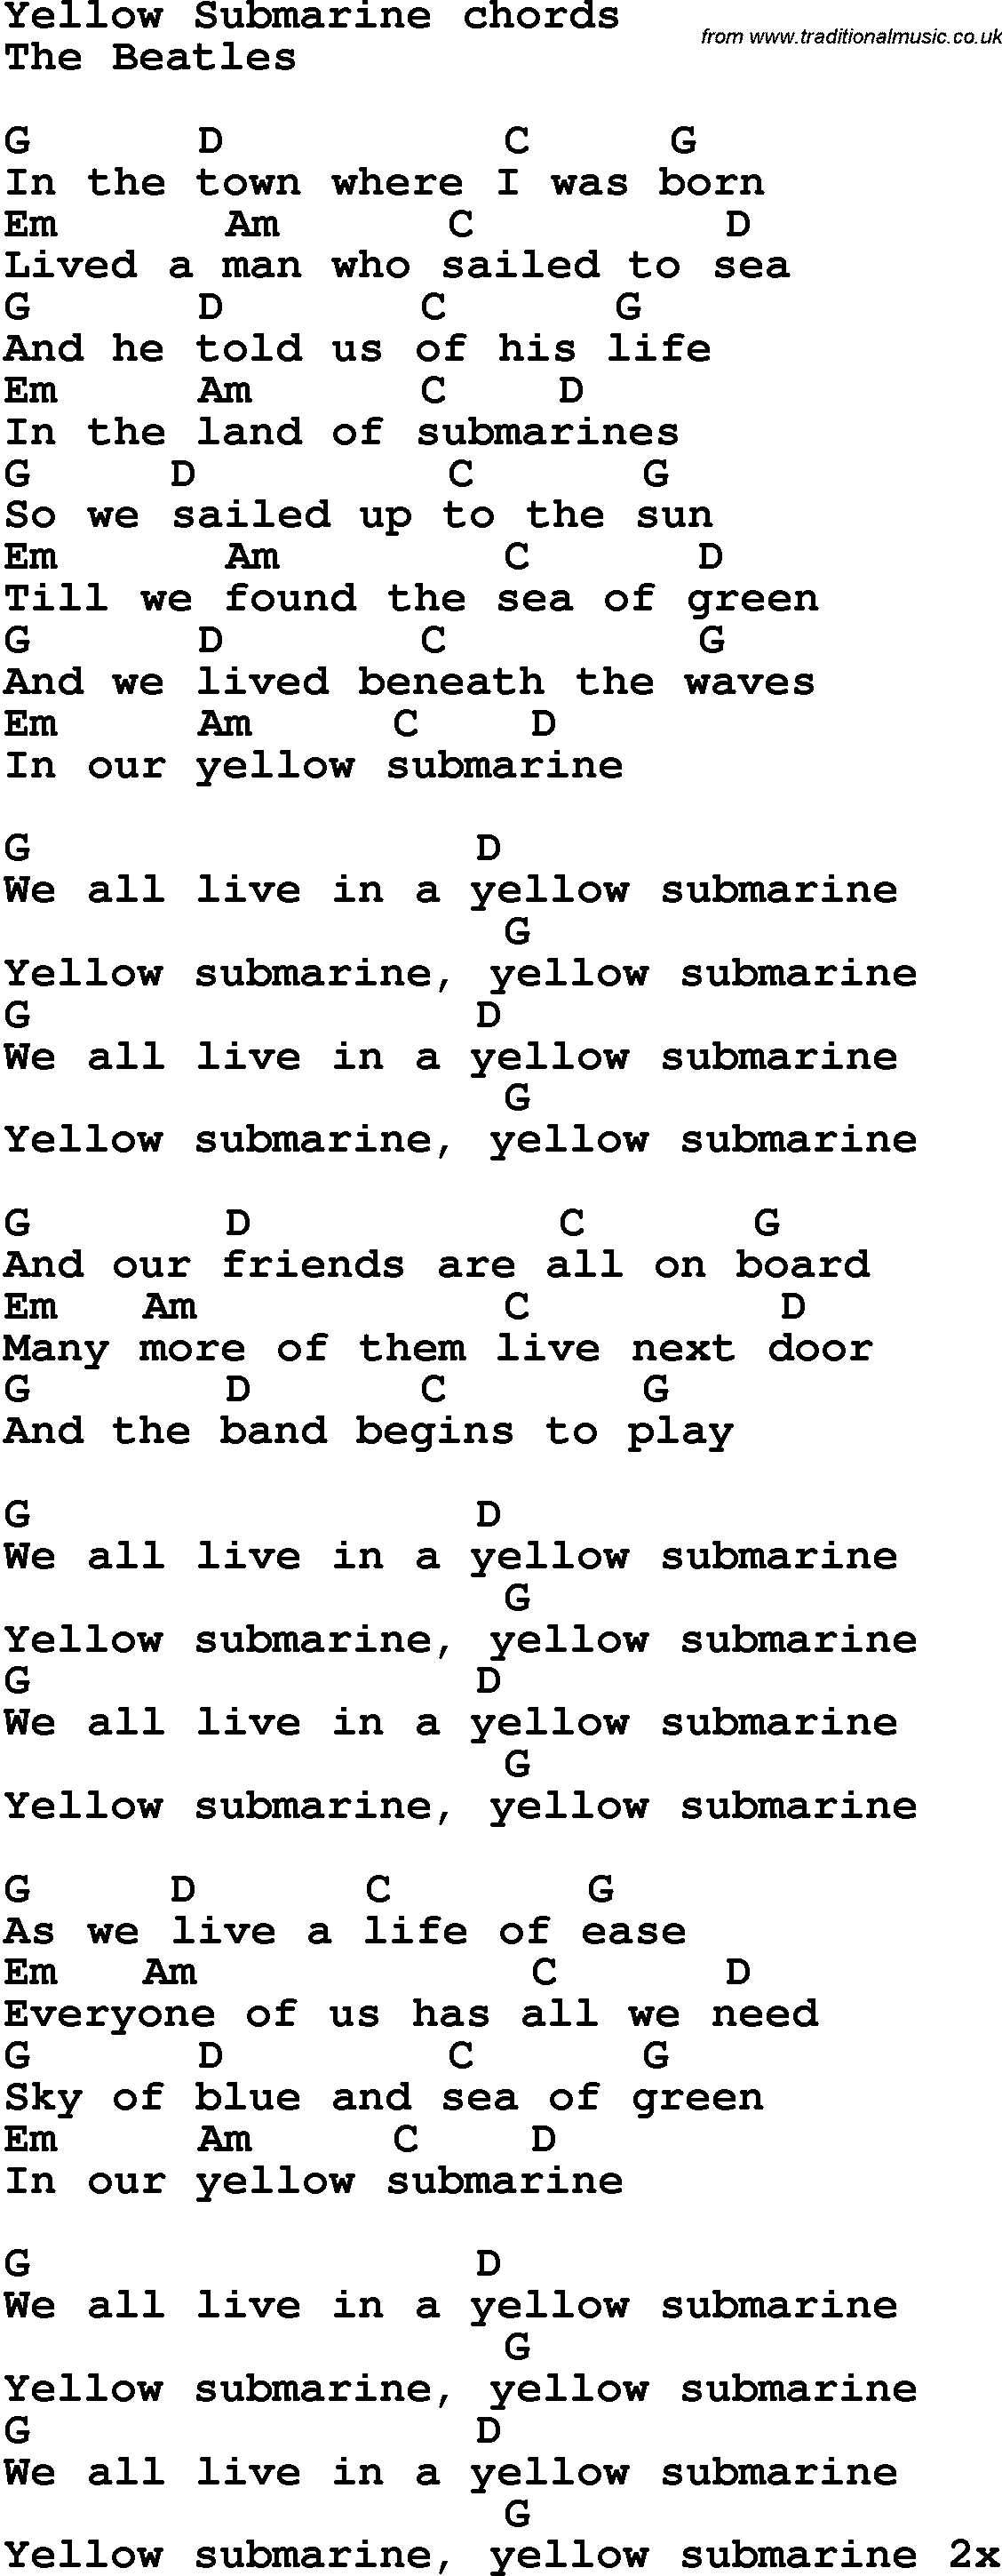 Song lyrics with guitar chords for Yellow Submarine